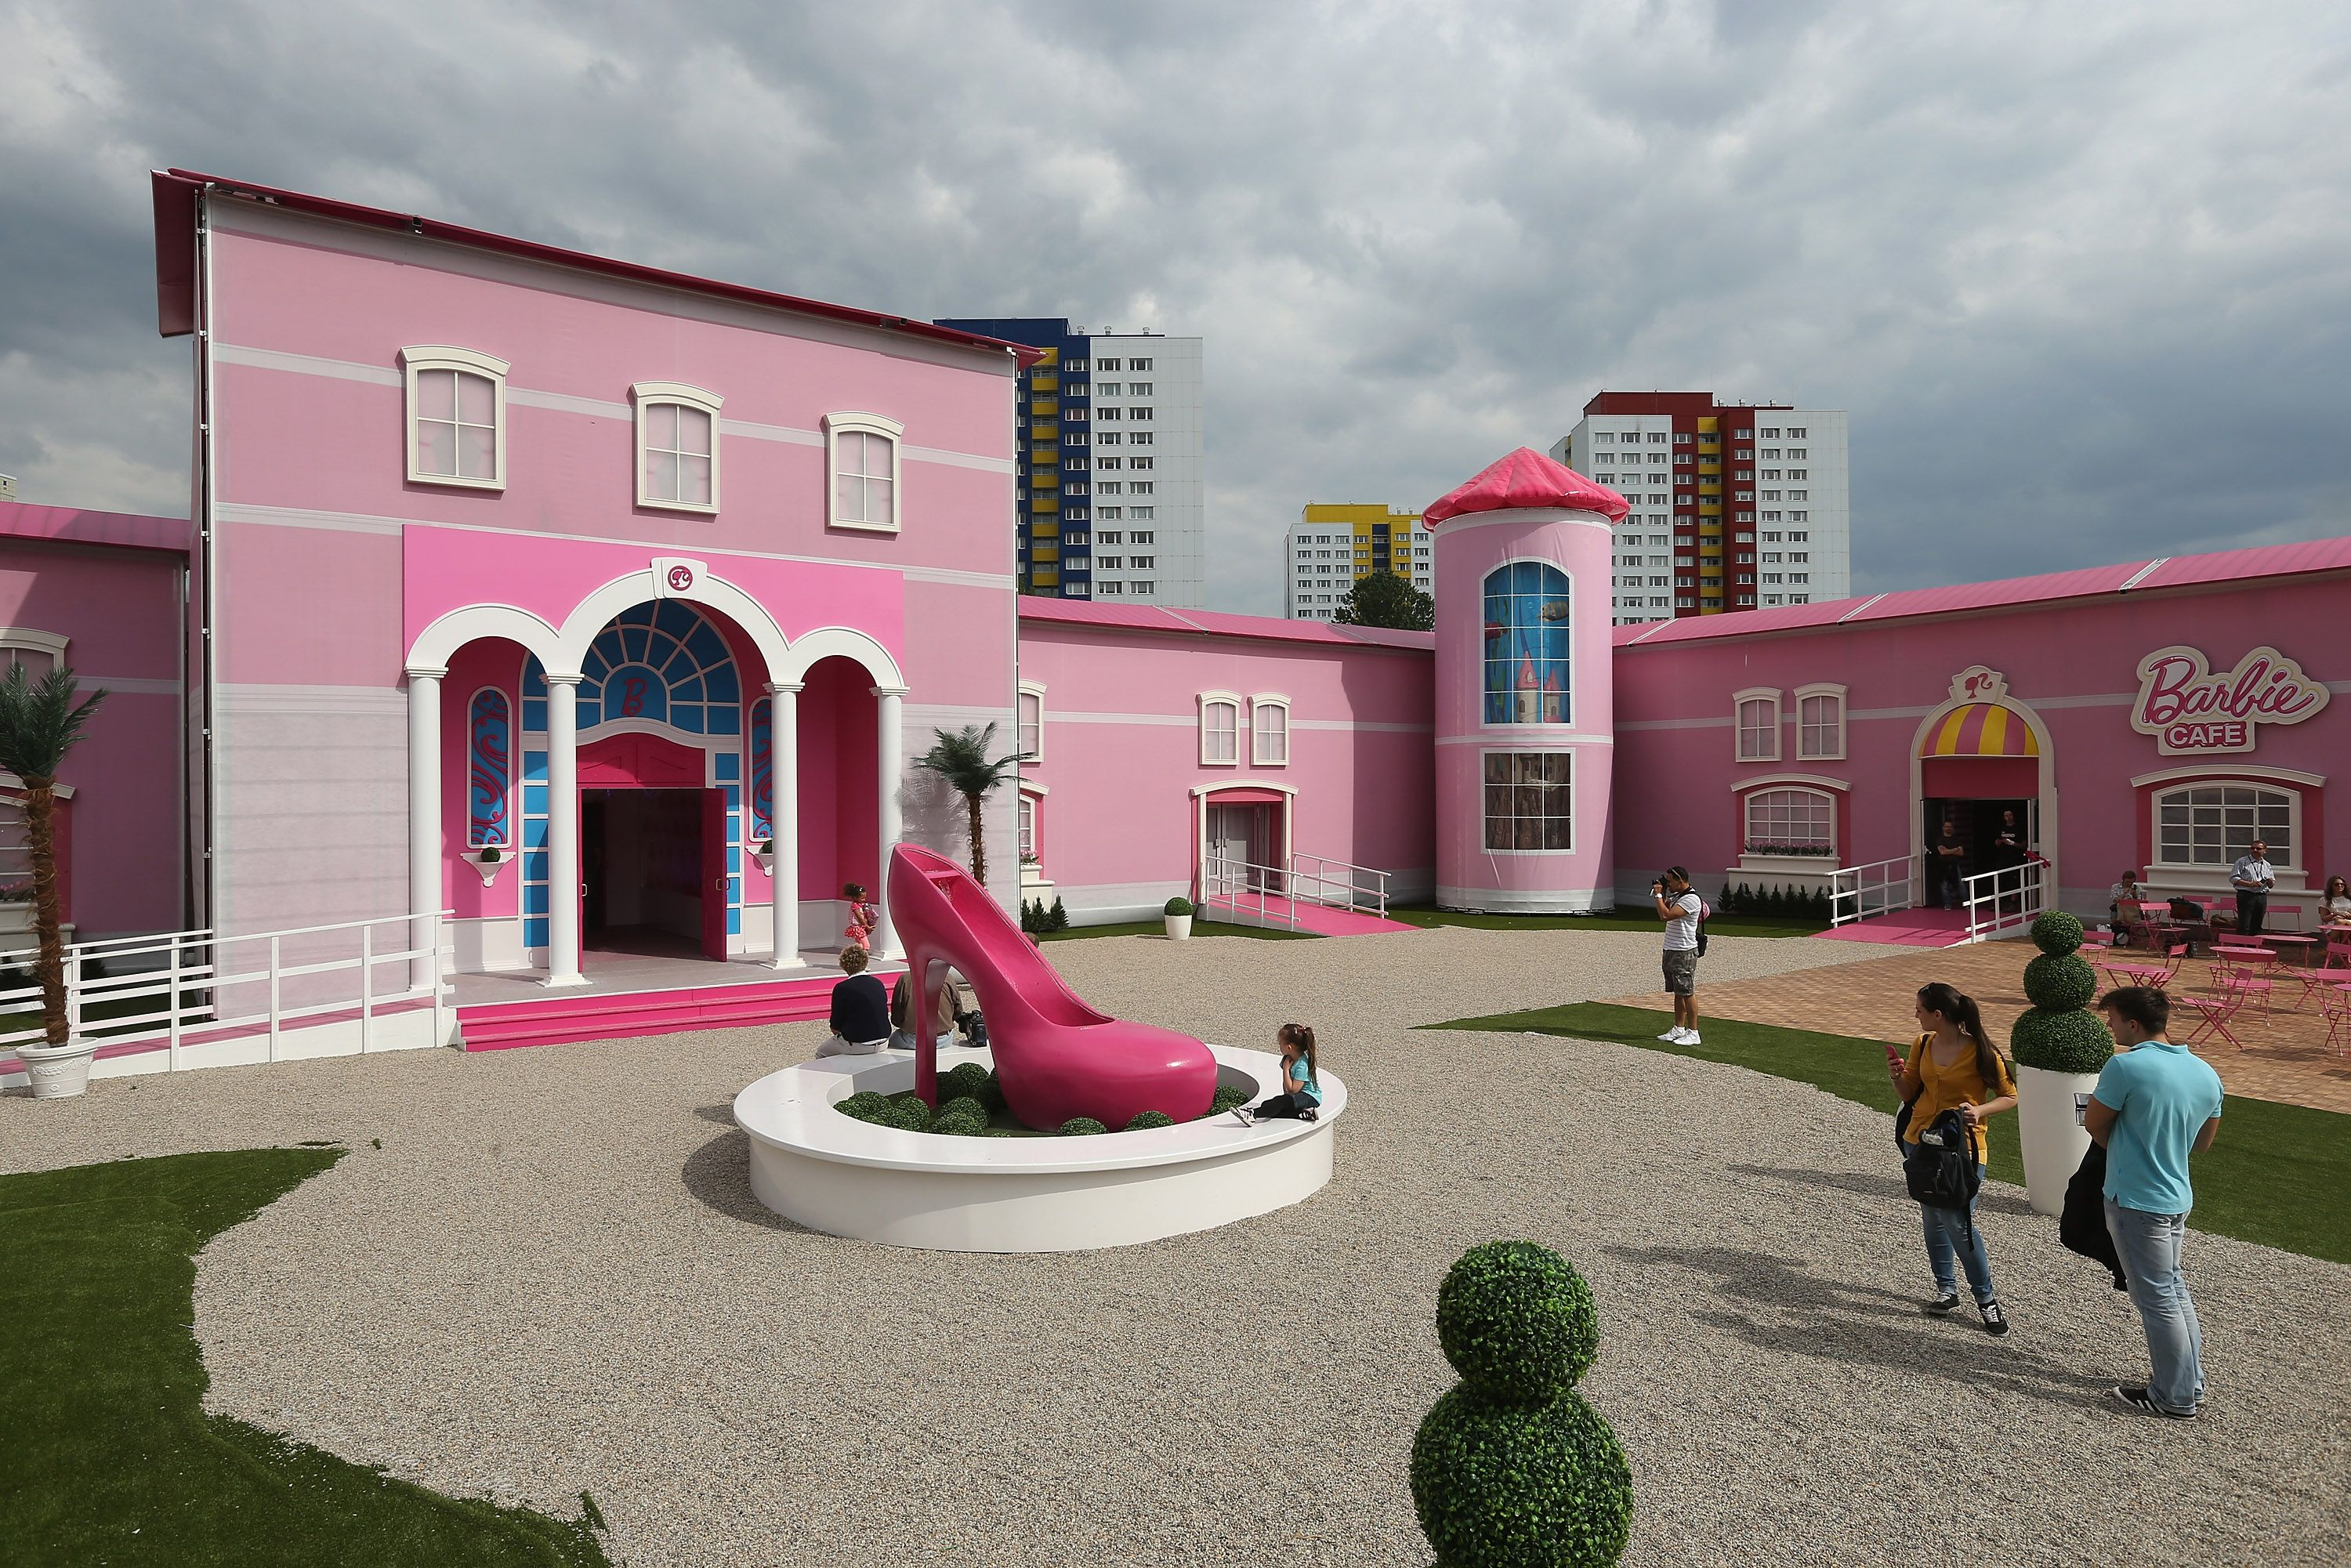 Womens rights protesters disrupted the opening of a giant pink dolls house in berlin yesterday saying the barbie dreamhouse experience objectified women